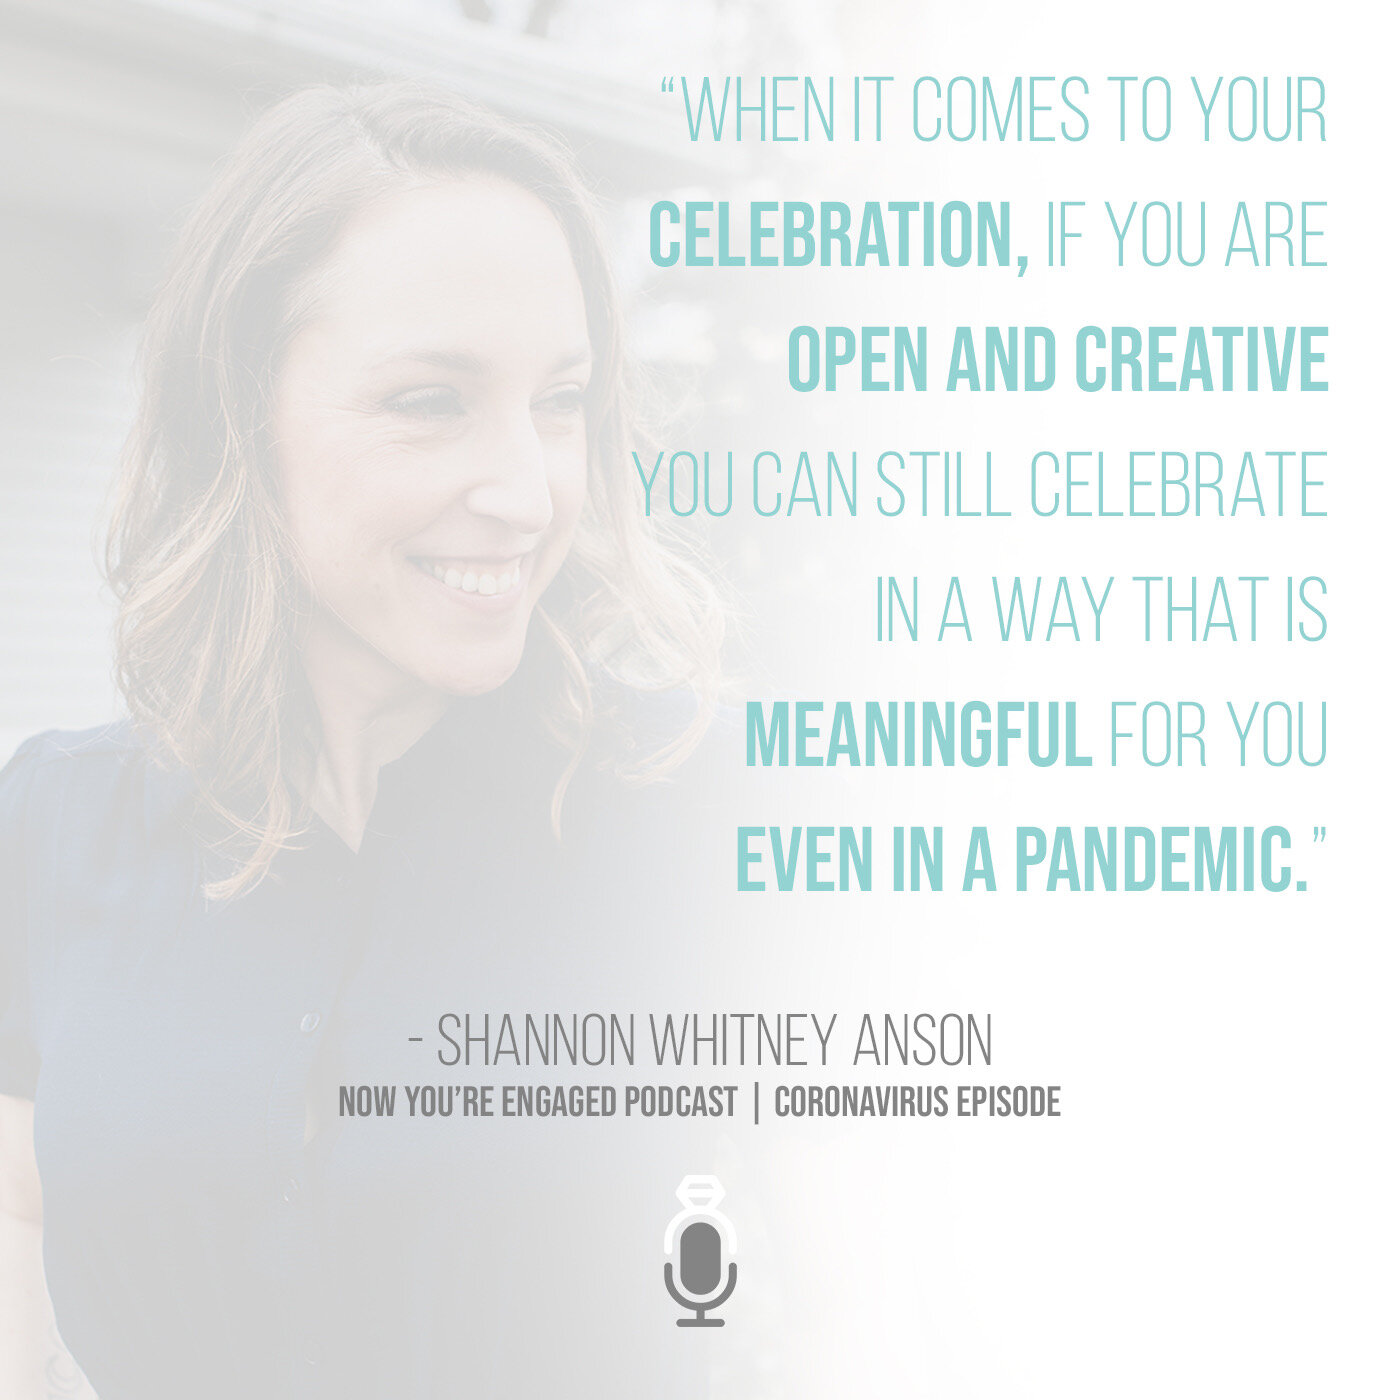 Shannon Whitney Anson wedding advice during the pandemic